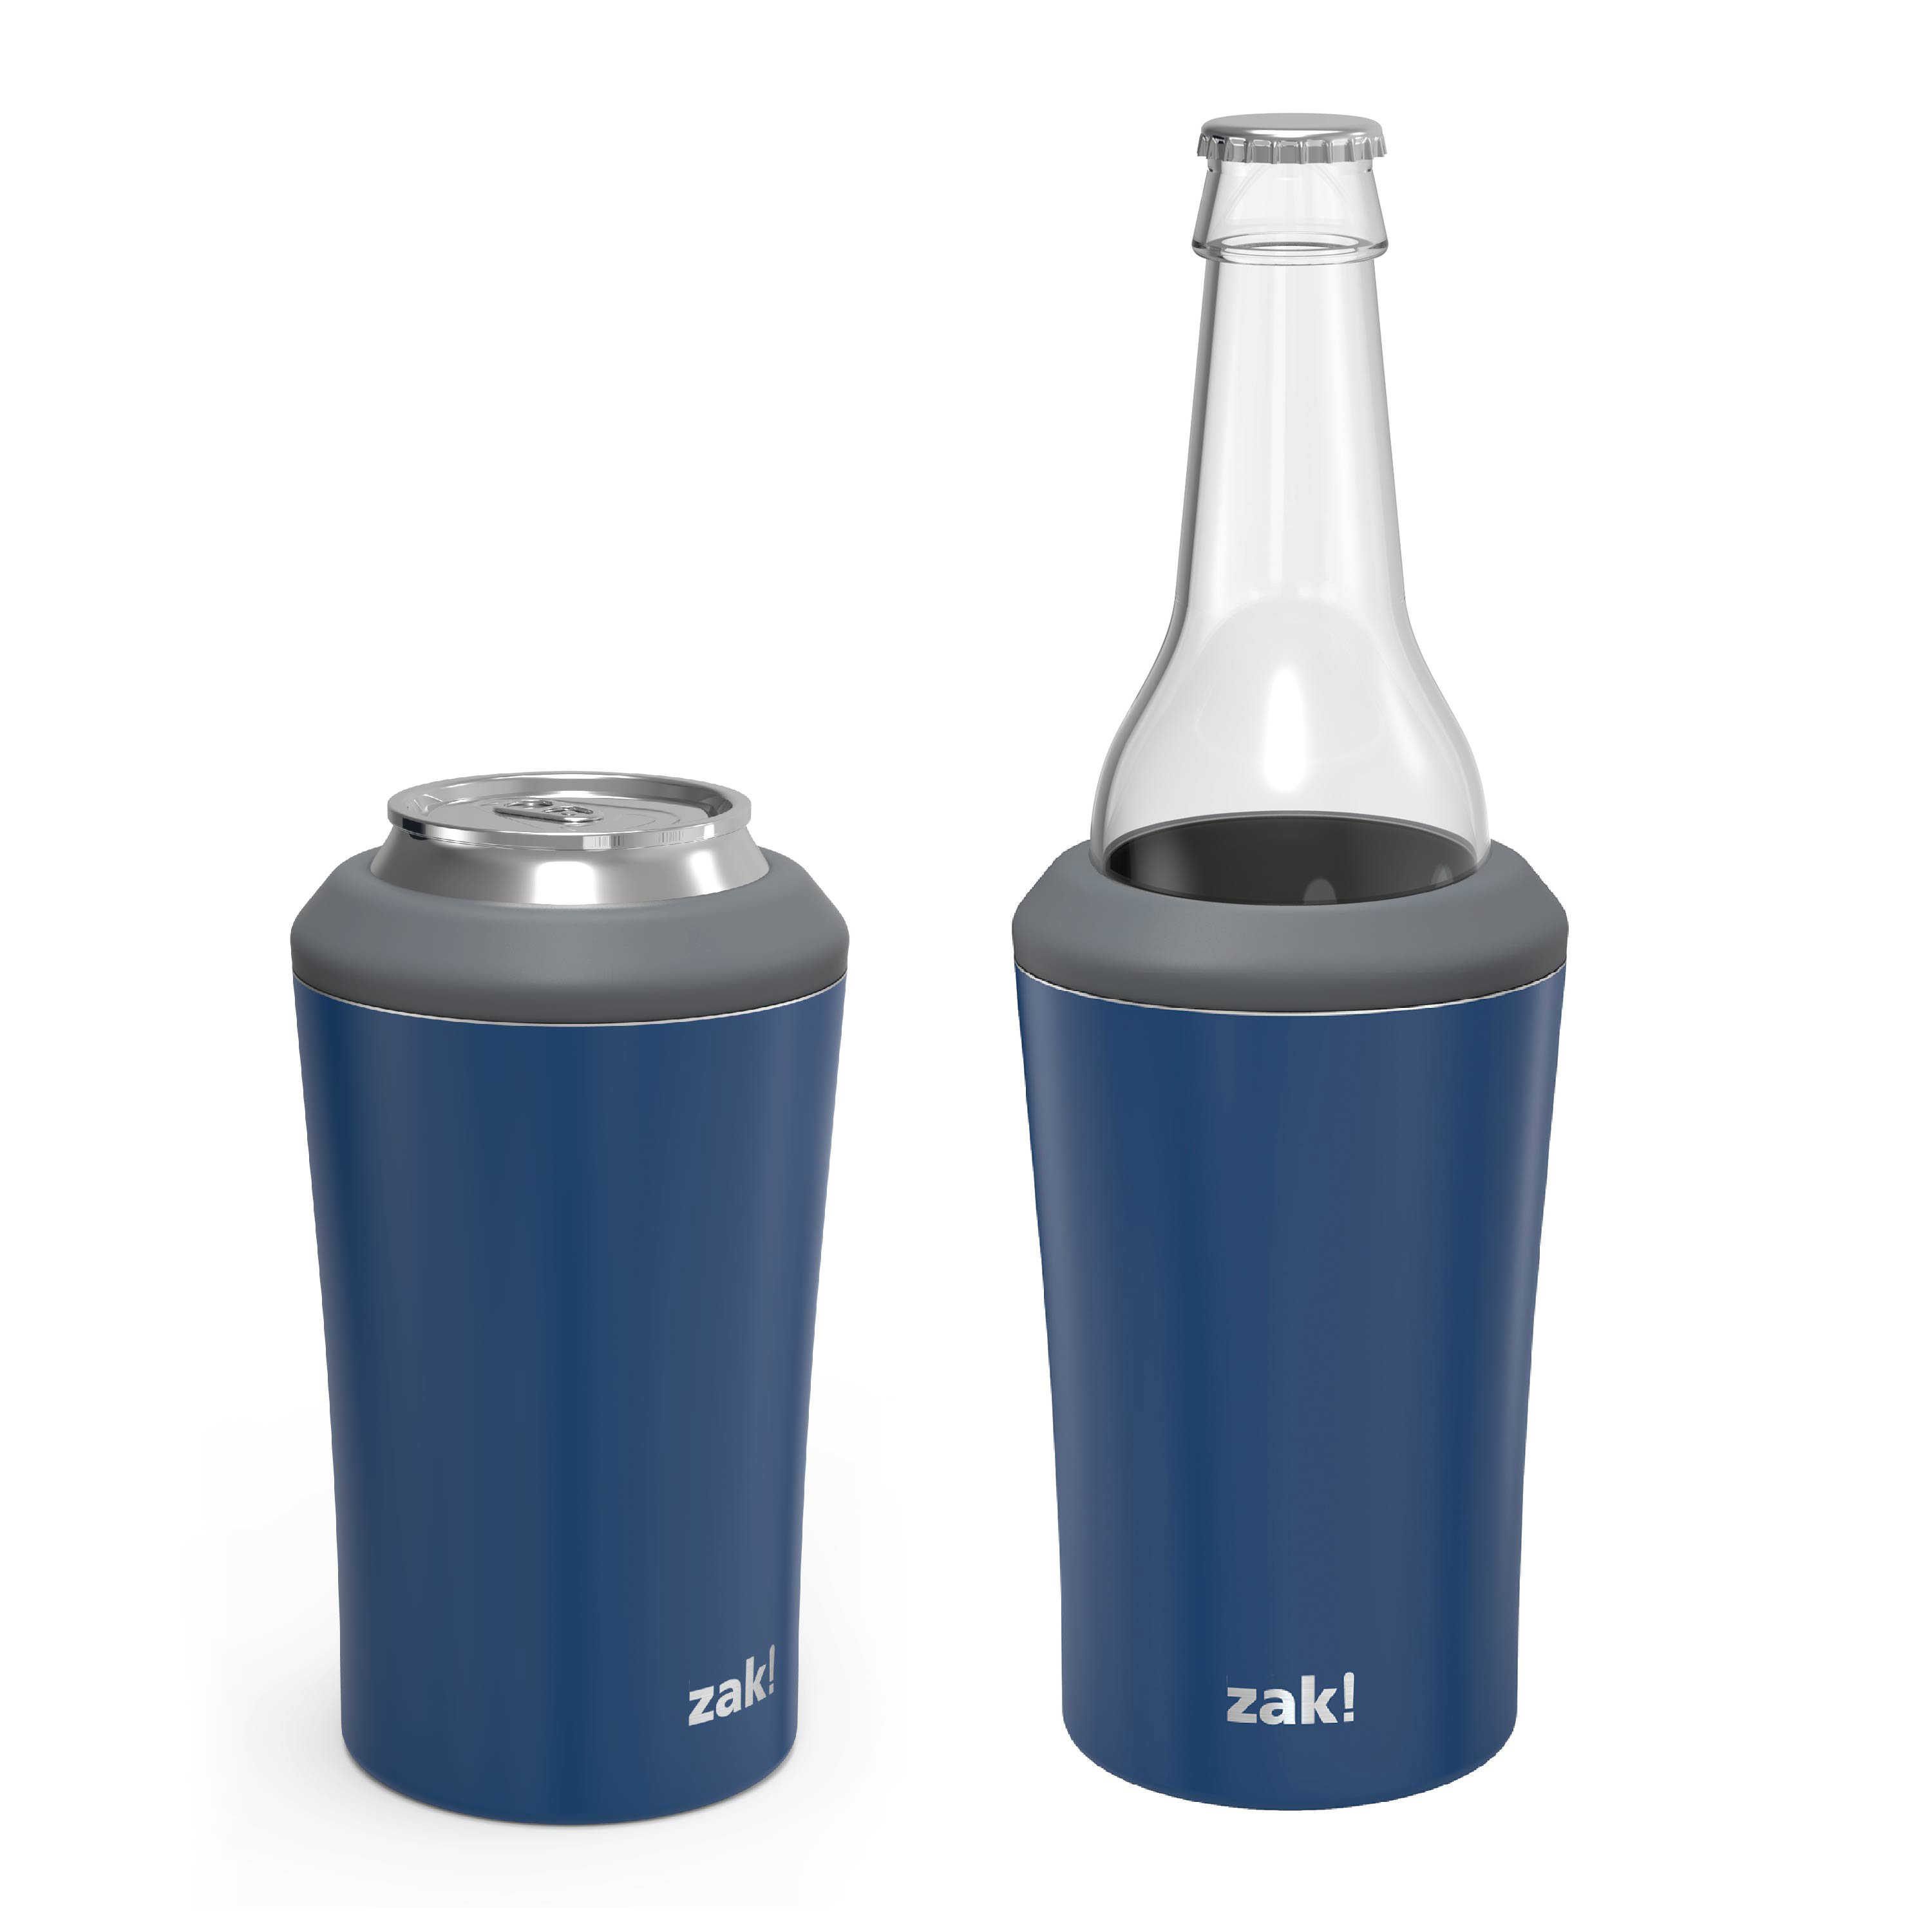 Zak Hydration 12 ounce Double Wall Stainless Steel Can and Bottle Cooler with Vacuum Insulation, Indigo slideshow image 2